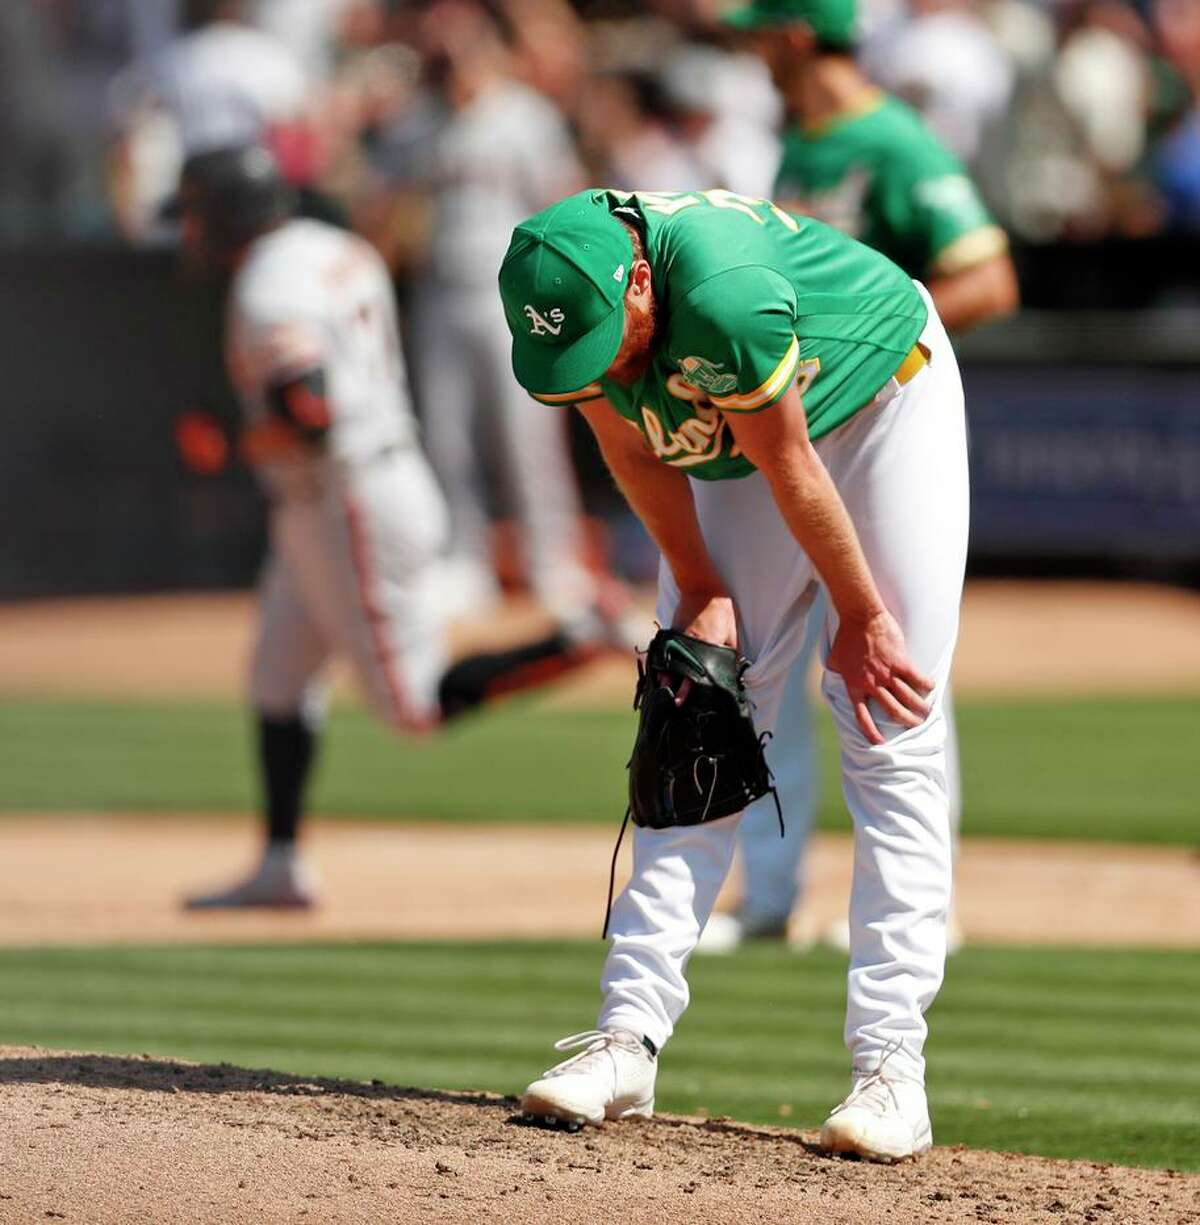 Oakland Athletics' reliever AJ Puk reacts to giving up go-ahead 2-run home run to San Francisco Giants' Donovan Solano in 8th inning during MLB game at Oakland Coliseum in Oakland, Calif., on Sunday, August 22, 2021.